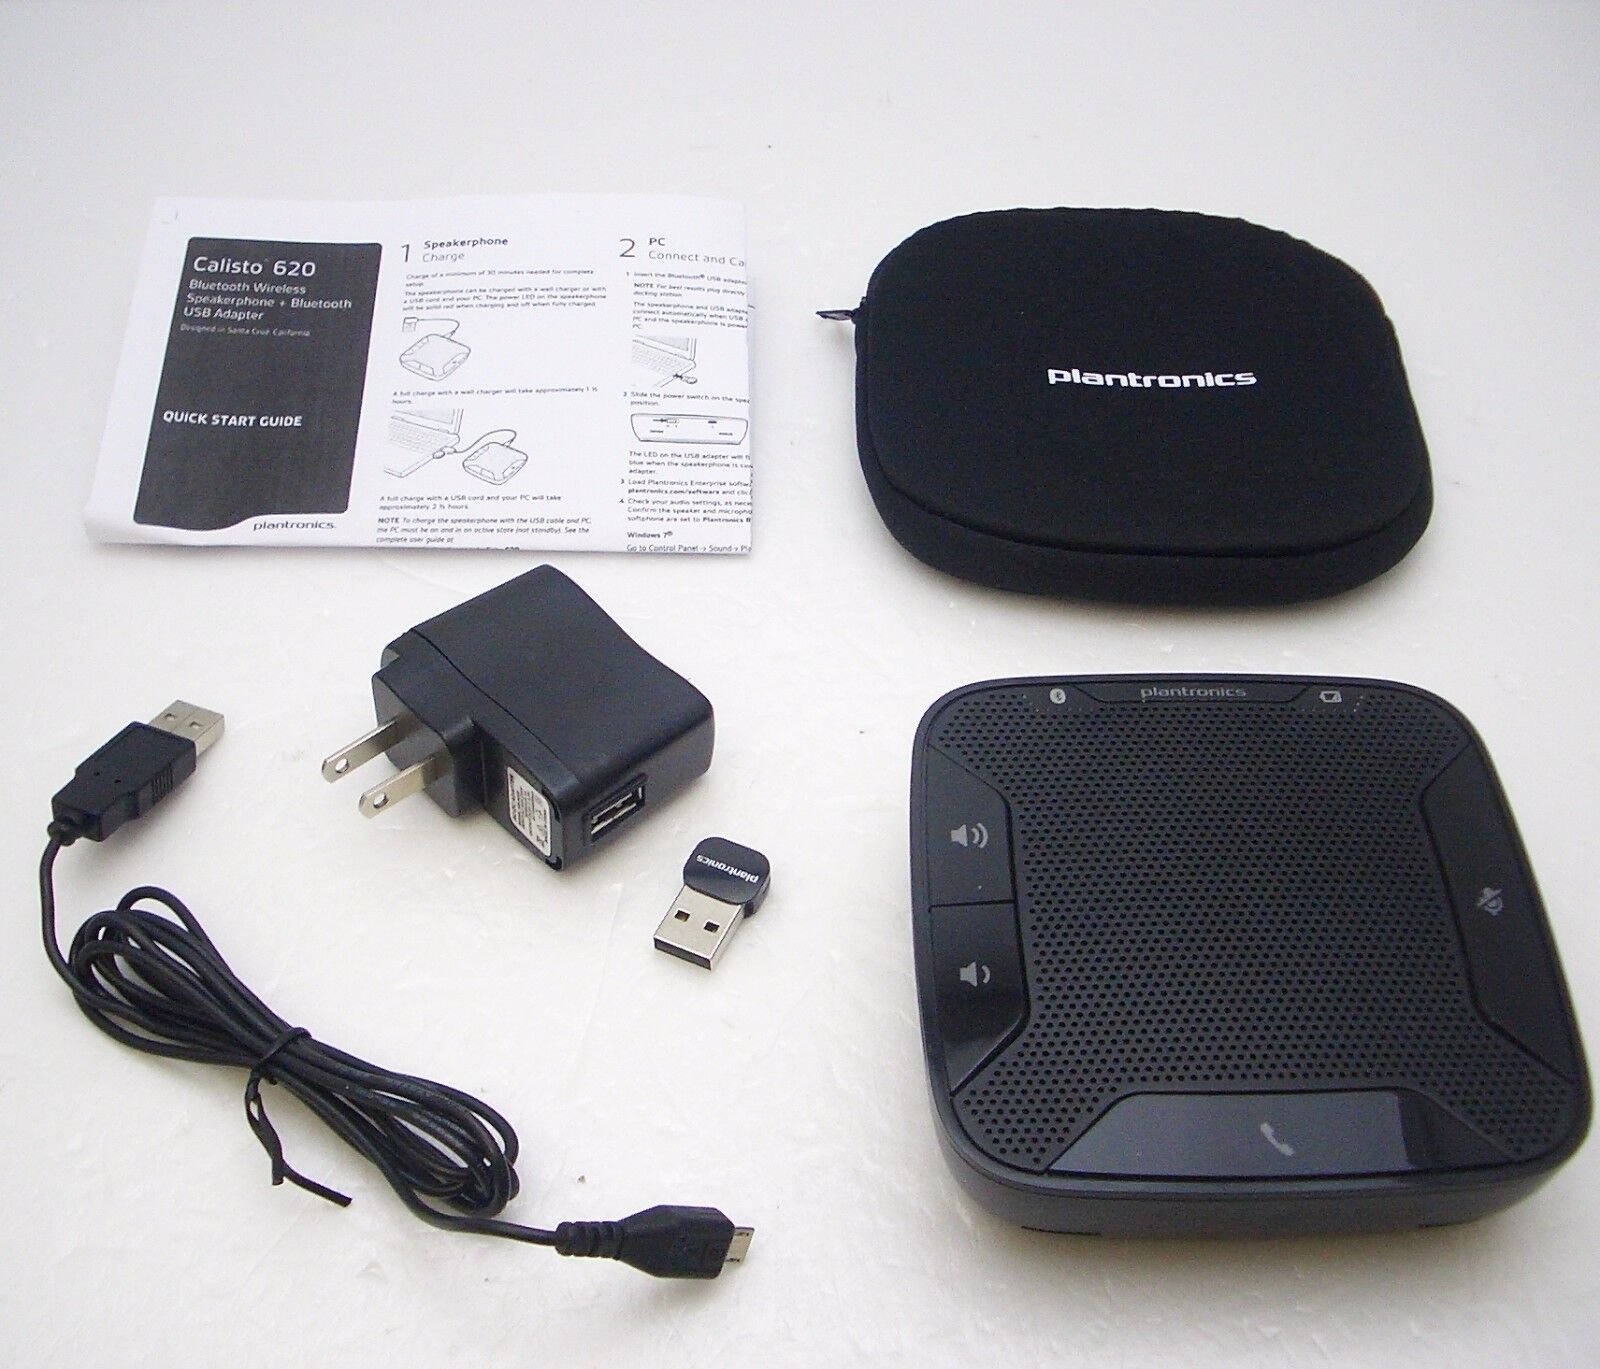 Details about PLANTRONICS CALISTO P620 Bluetooth Wireless USB PC Speakerphone TESTED WORKING